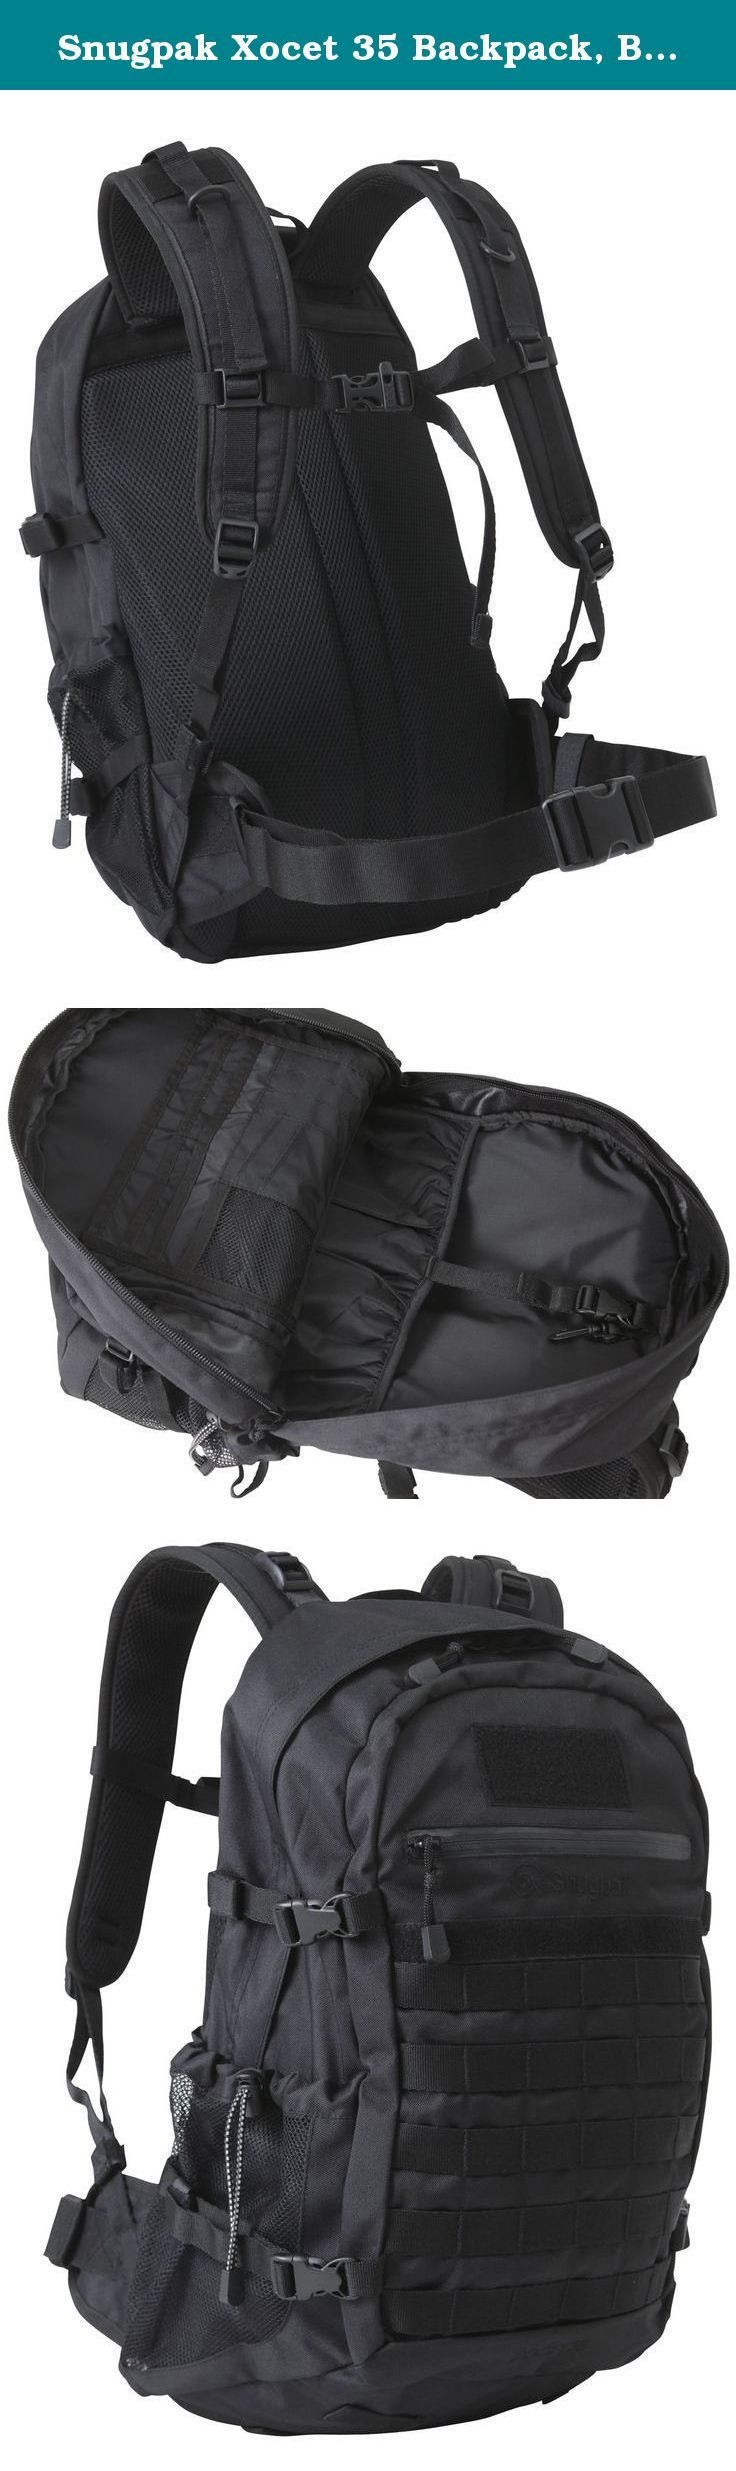 Snugpak Xocet 35 Backpack, Black. The Xocet 35 Backpack by Snugpak has received rave reviews. It has a lot of great features that many will like and appreciate. There is a roomy main compartment for your gear with a Hydration system sleeve and an outlet port through the top to run the drinking tube. The main compartment has an organization system to help store and arrange various items. In addition, there is a zippered storage pocket for those items you want to keep secure and accessible....